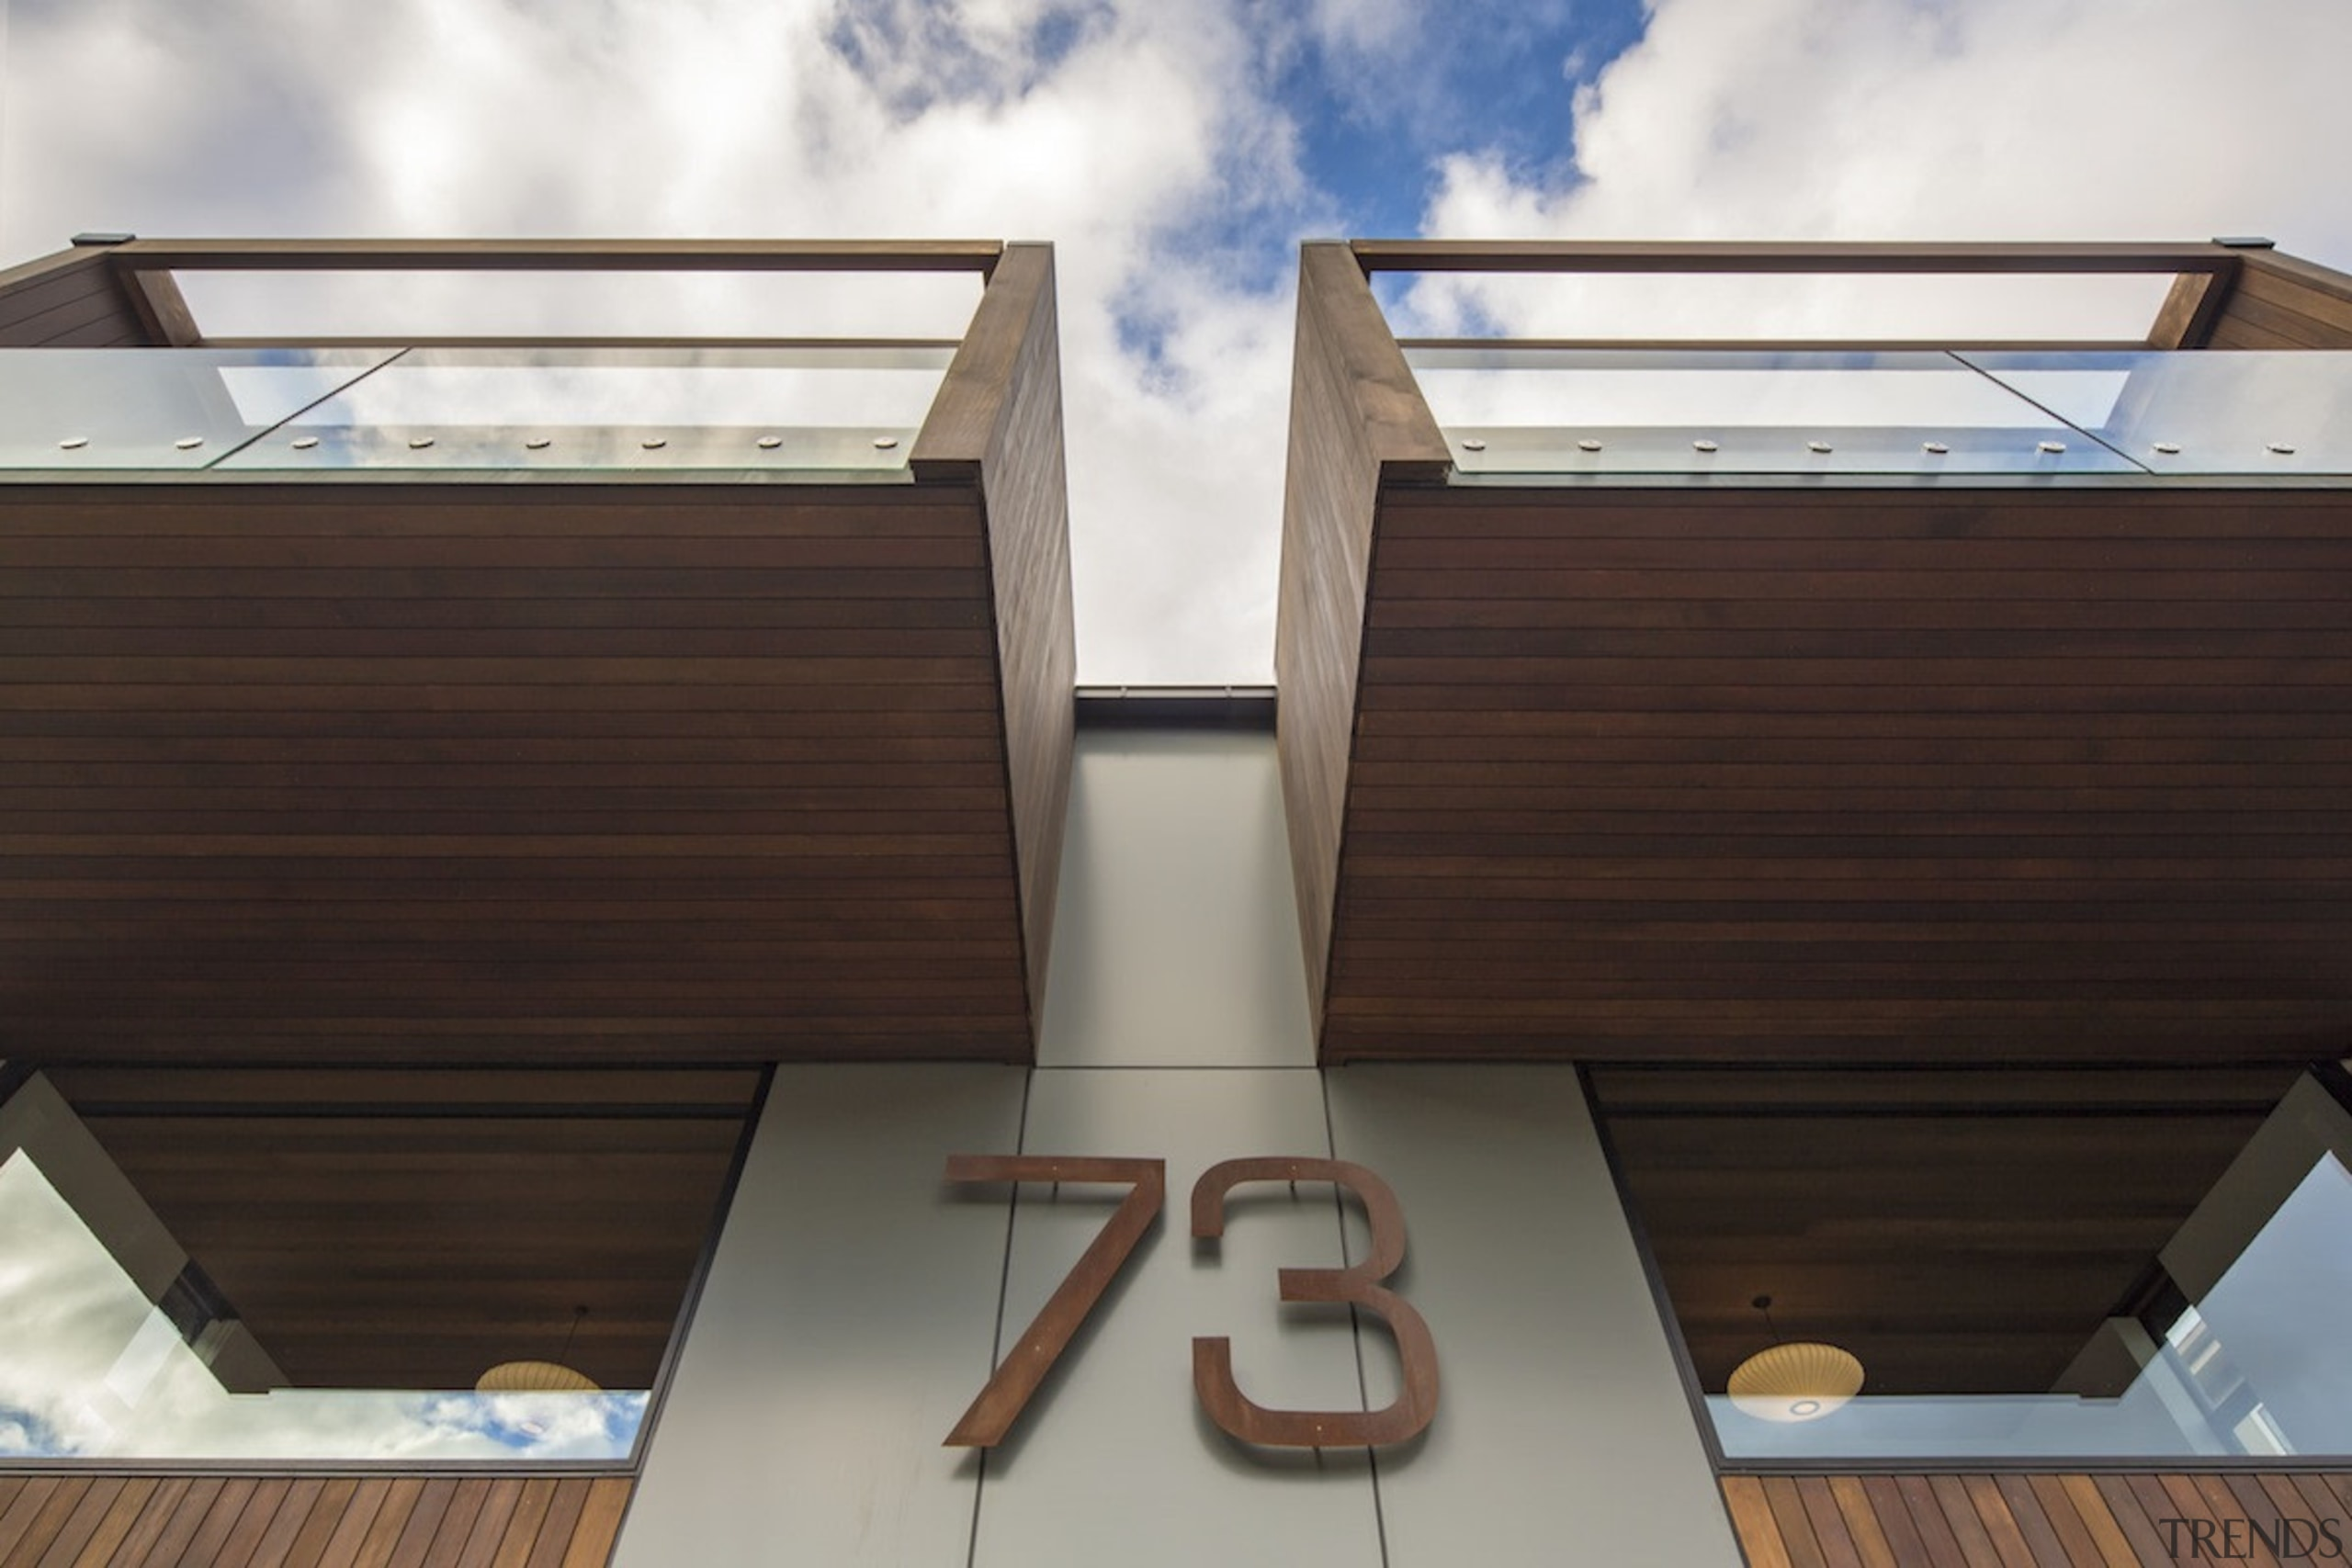 Arrowtown-based Bennie Builders was the only Southern Lakes architecture, daylighting, furniture, product design, wood, black